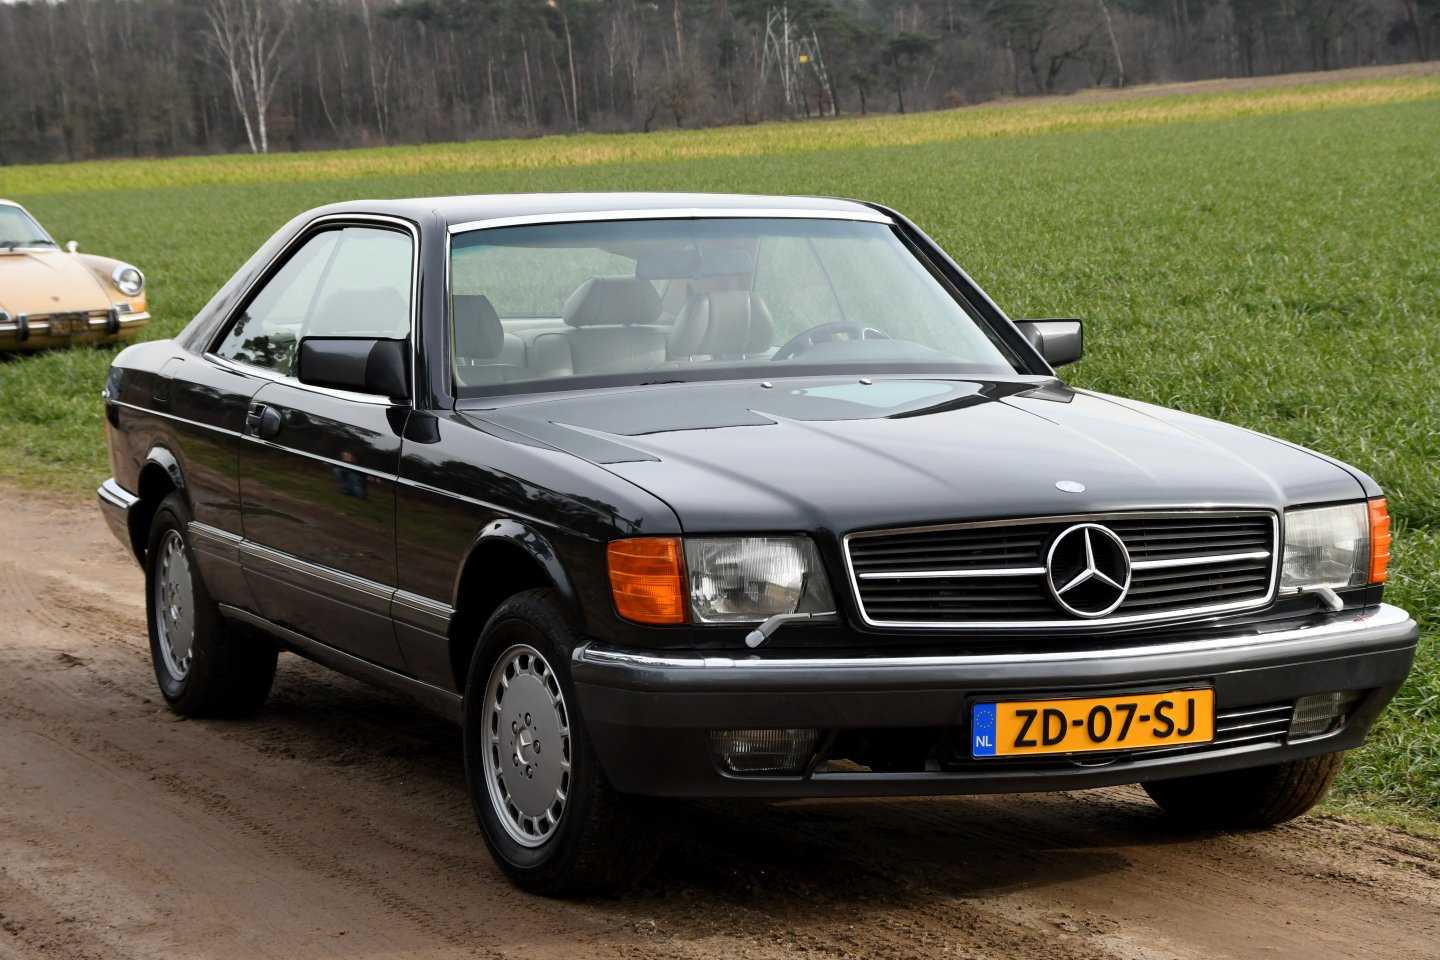 1991 Mercedes Benz 500 Sec Coupe W126 Stuurman Clic And Special Cars